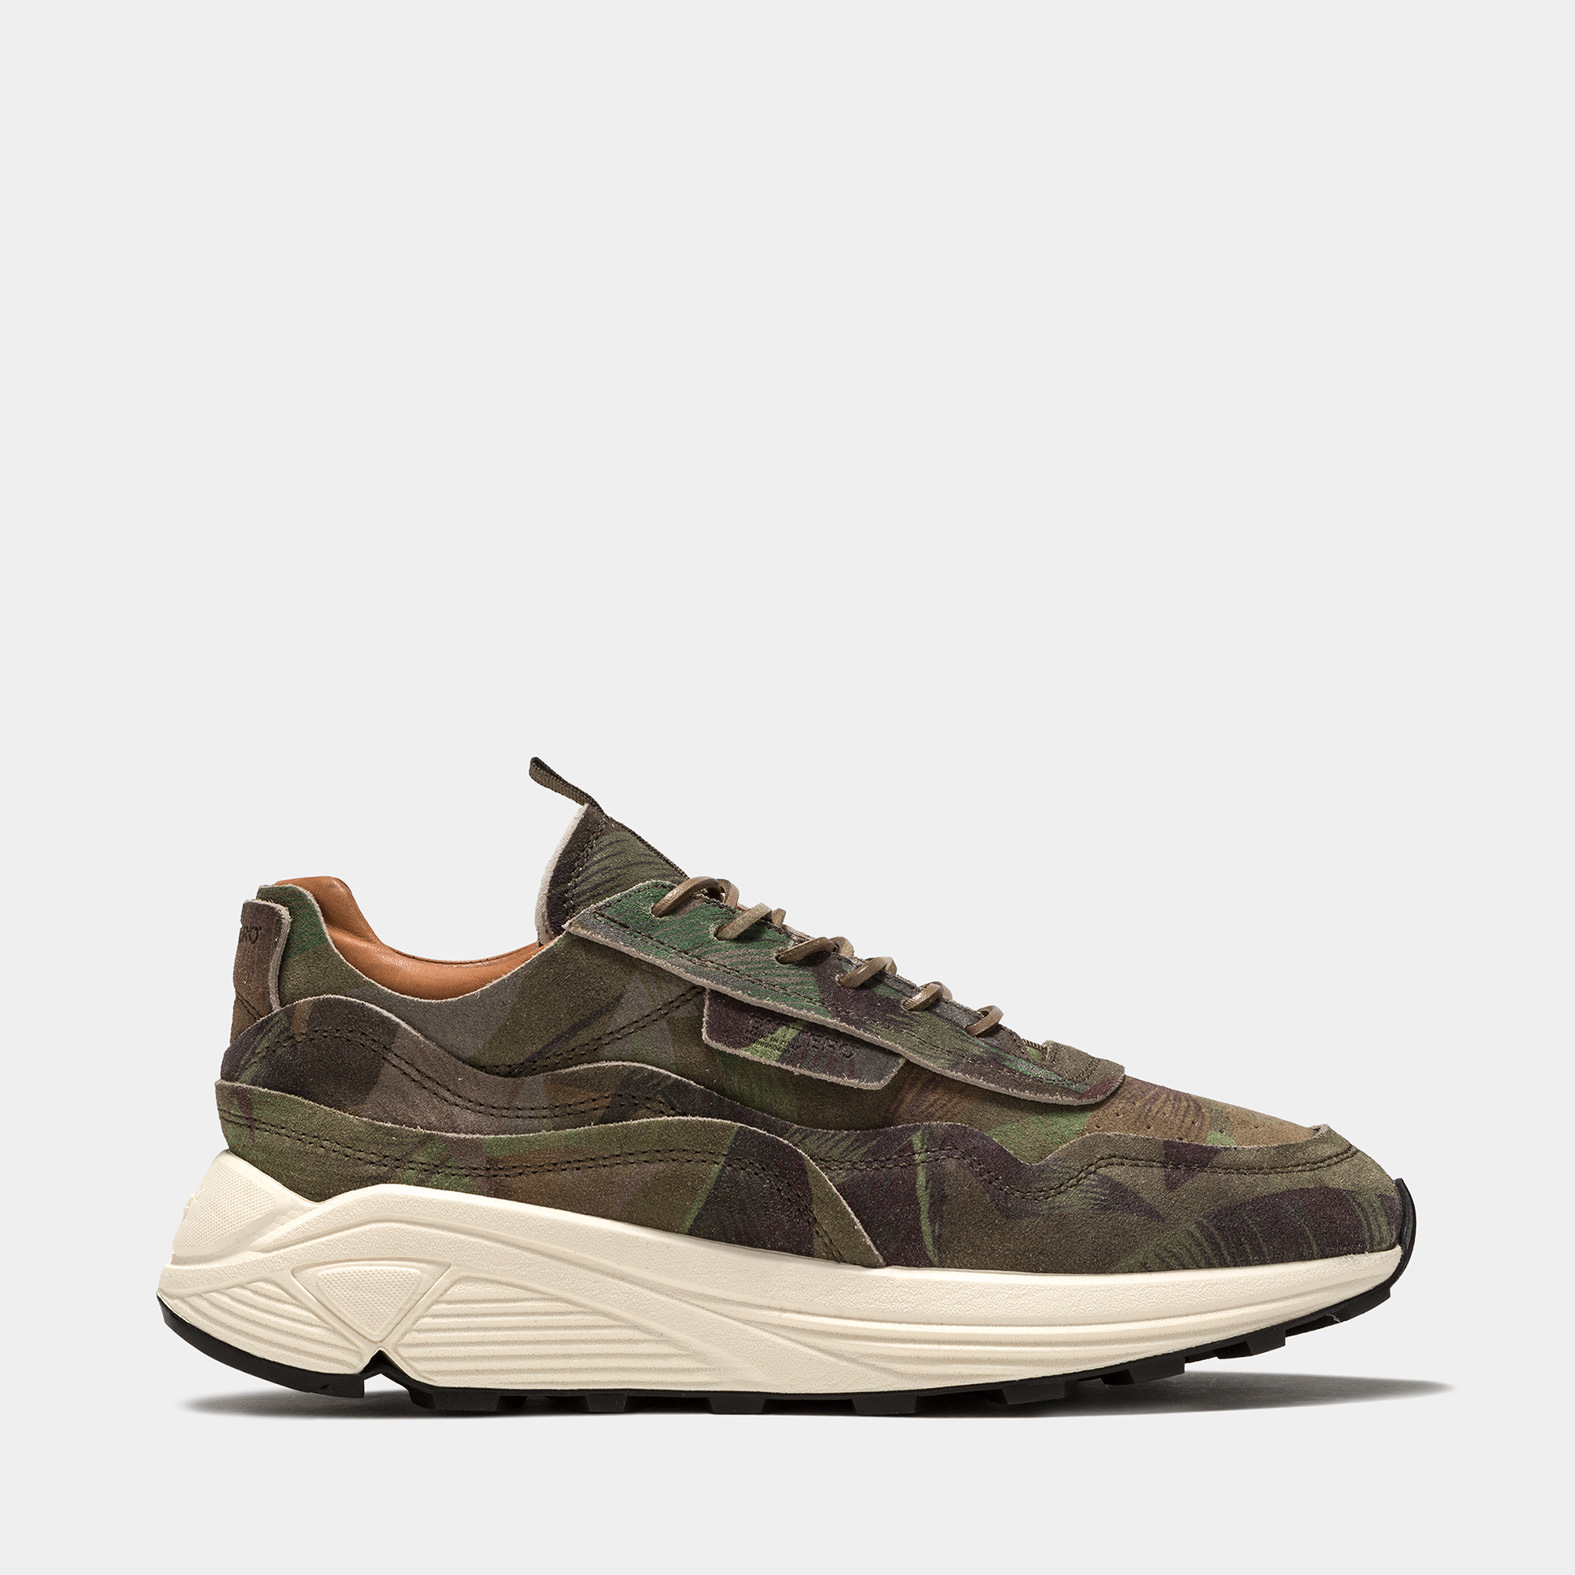 BUTTERO: VINCI SNEAKERS IN HUNTER GREEN SUEDE WITH FLORAL PATTERN